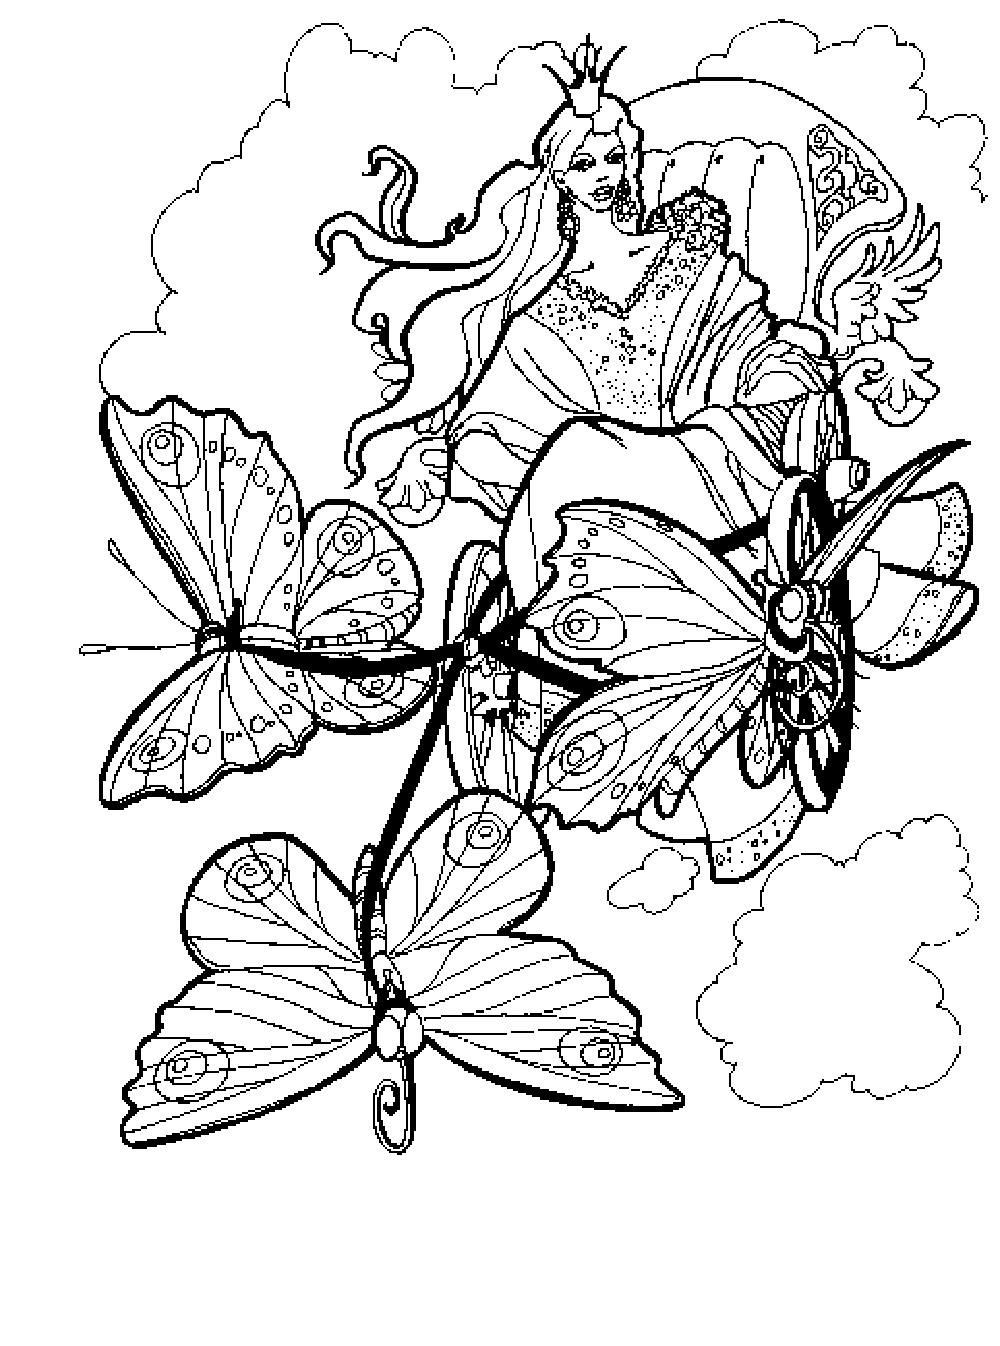 advanced coloring pages free printable coloring pages for adults advanced at coloring advanced pages